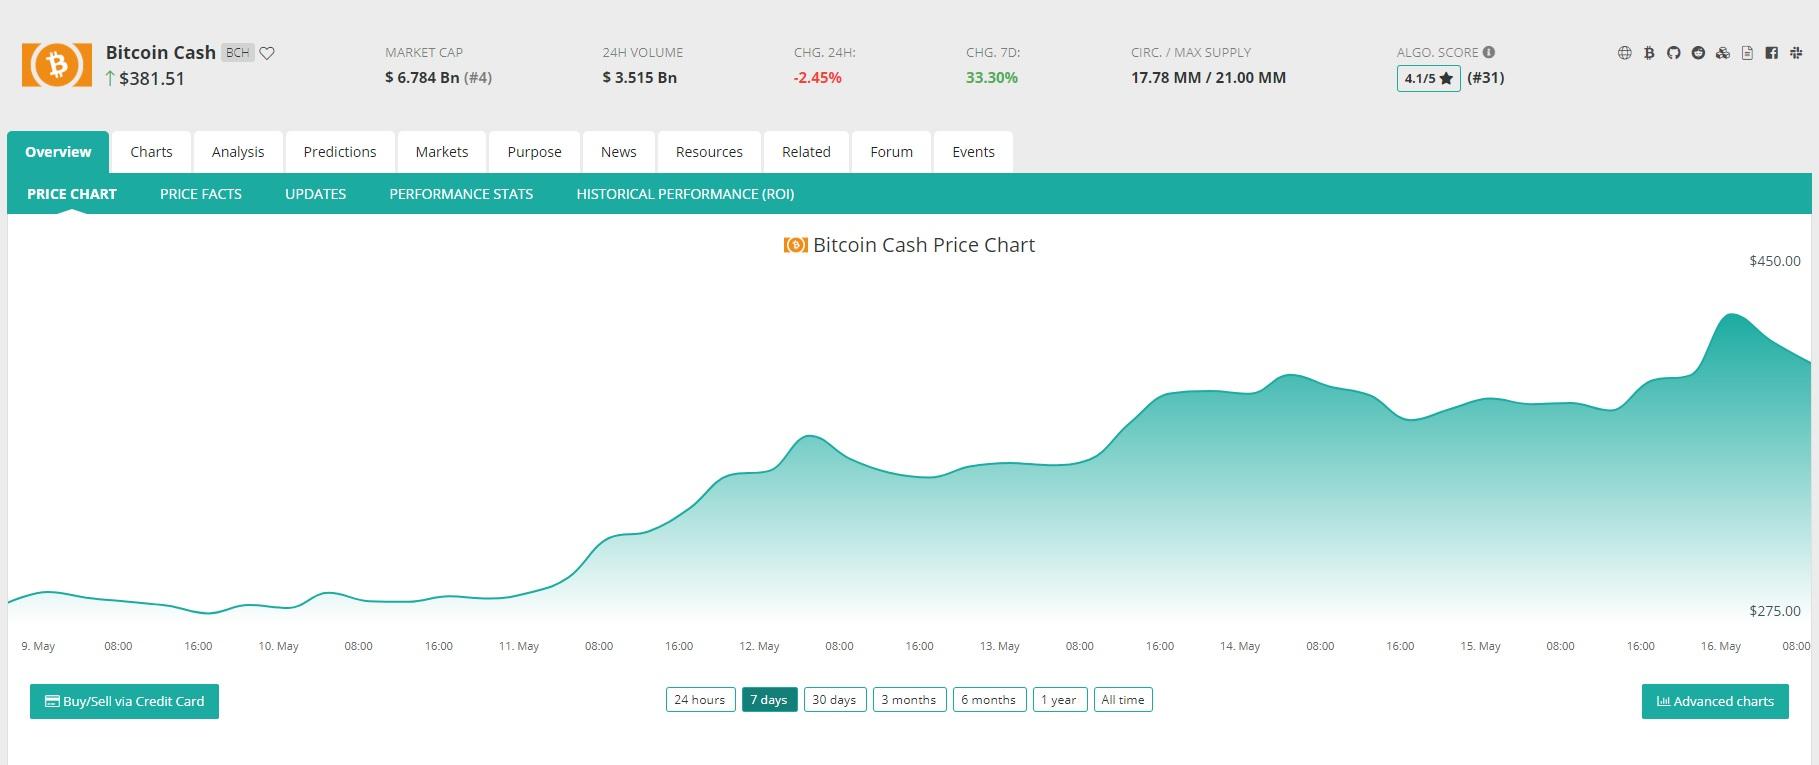 Coincheckup Aggregator Makes It Easier to Analyze the Crypto Market